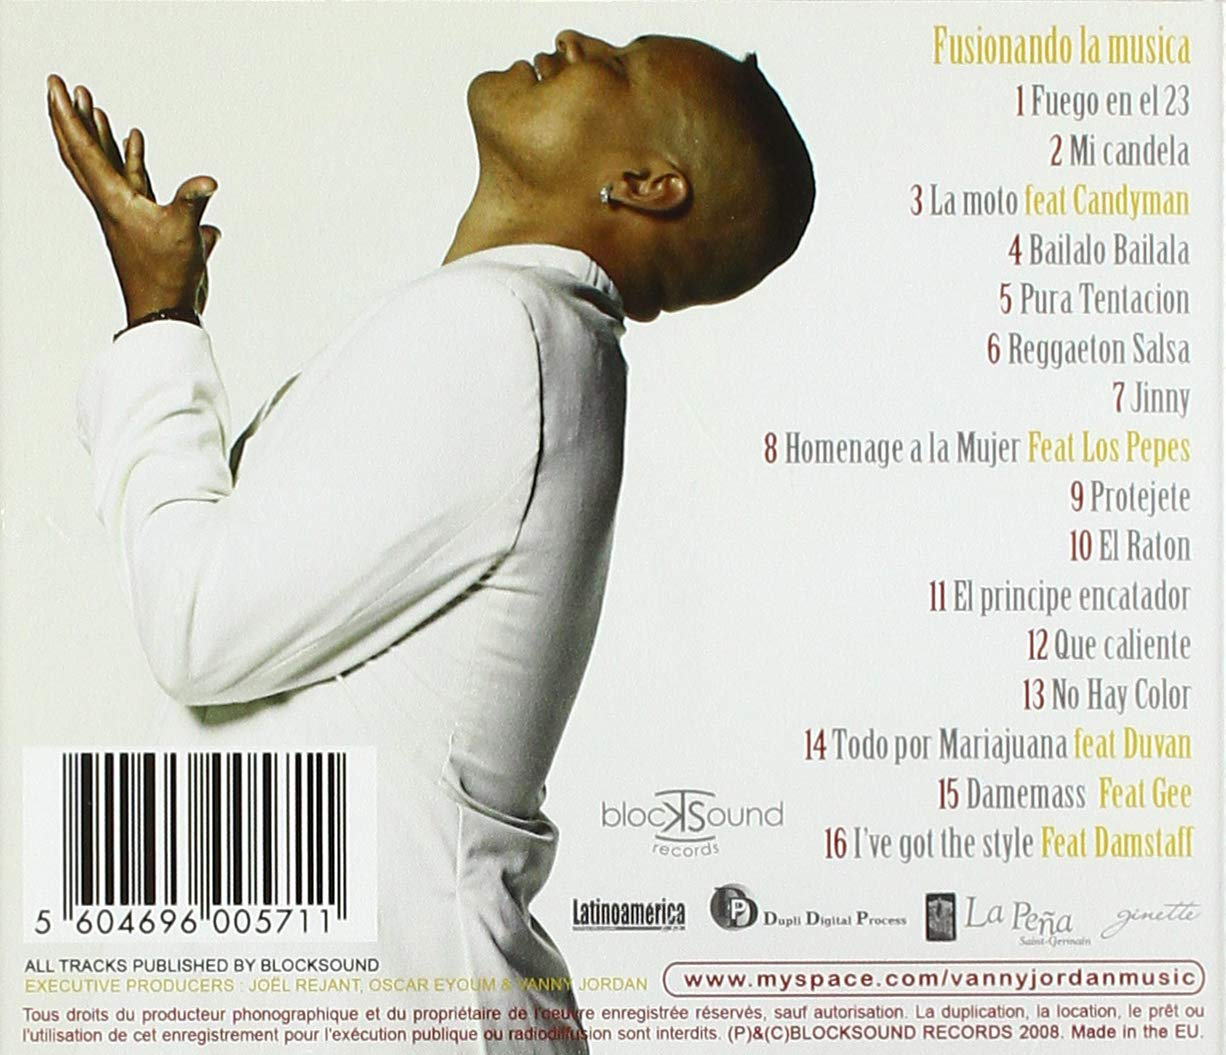 Jordan, Vanny - Fusionando la Musica (1 CD) - Amazon.com Music